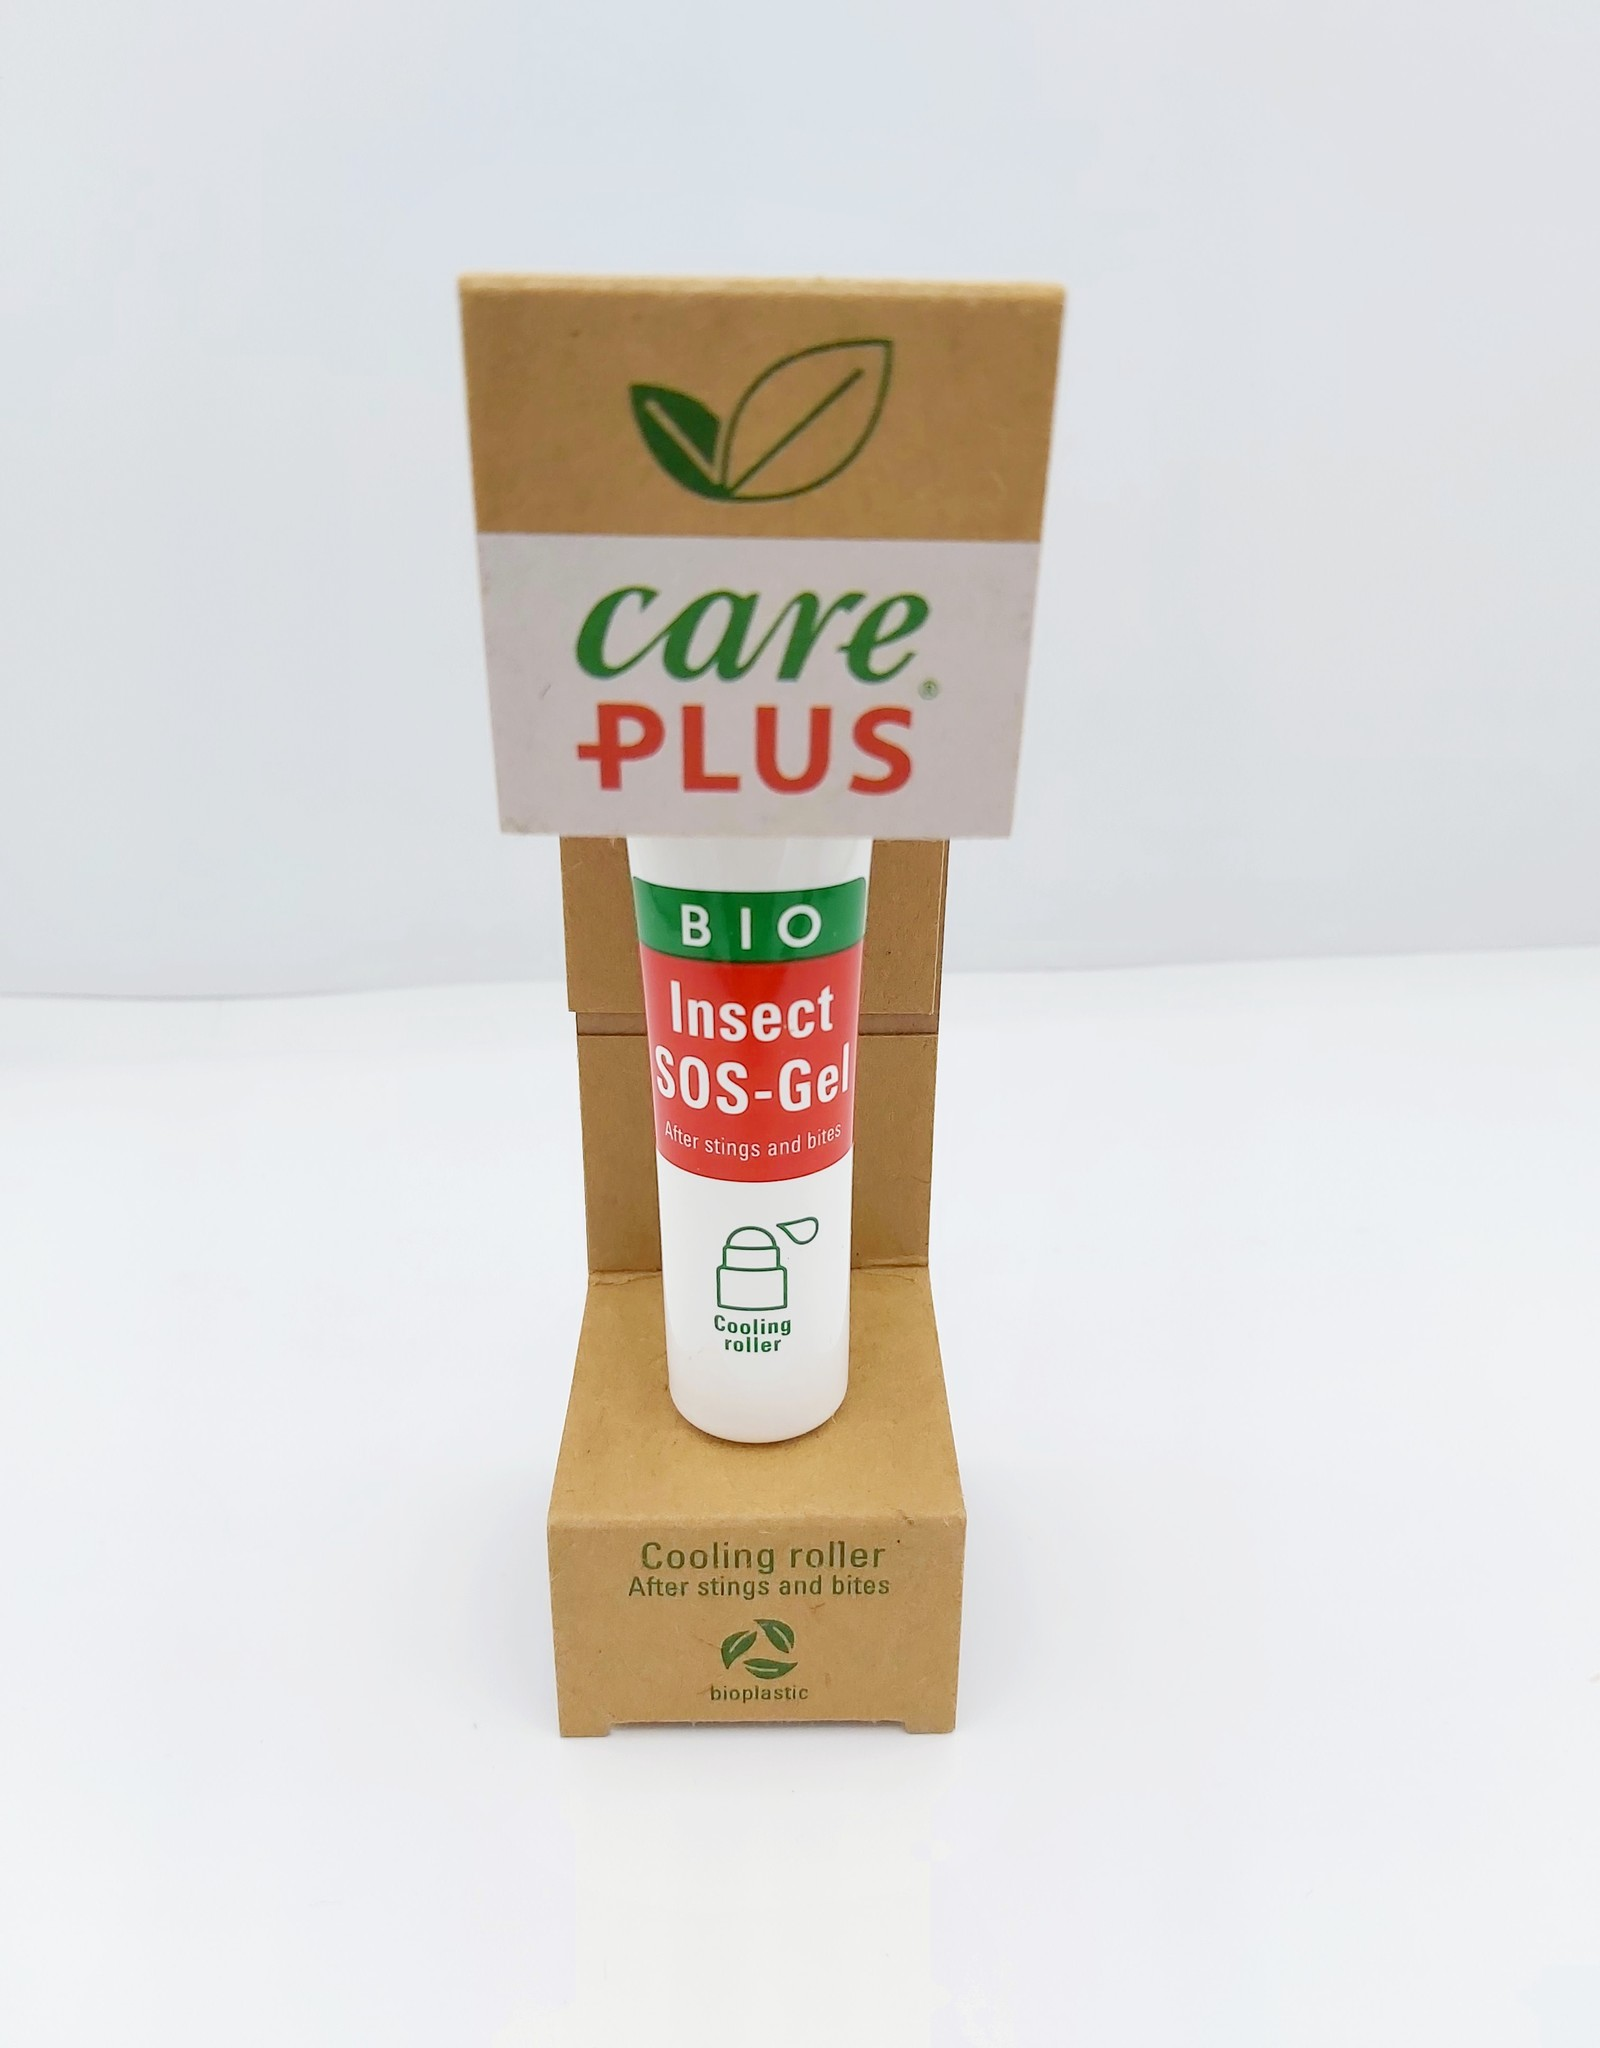 Care Plus Insect SOS-gel